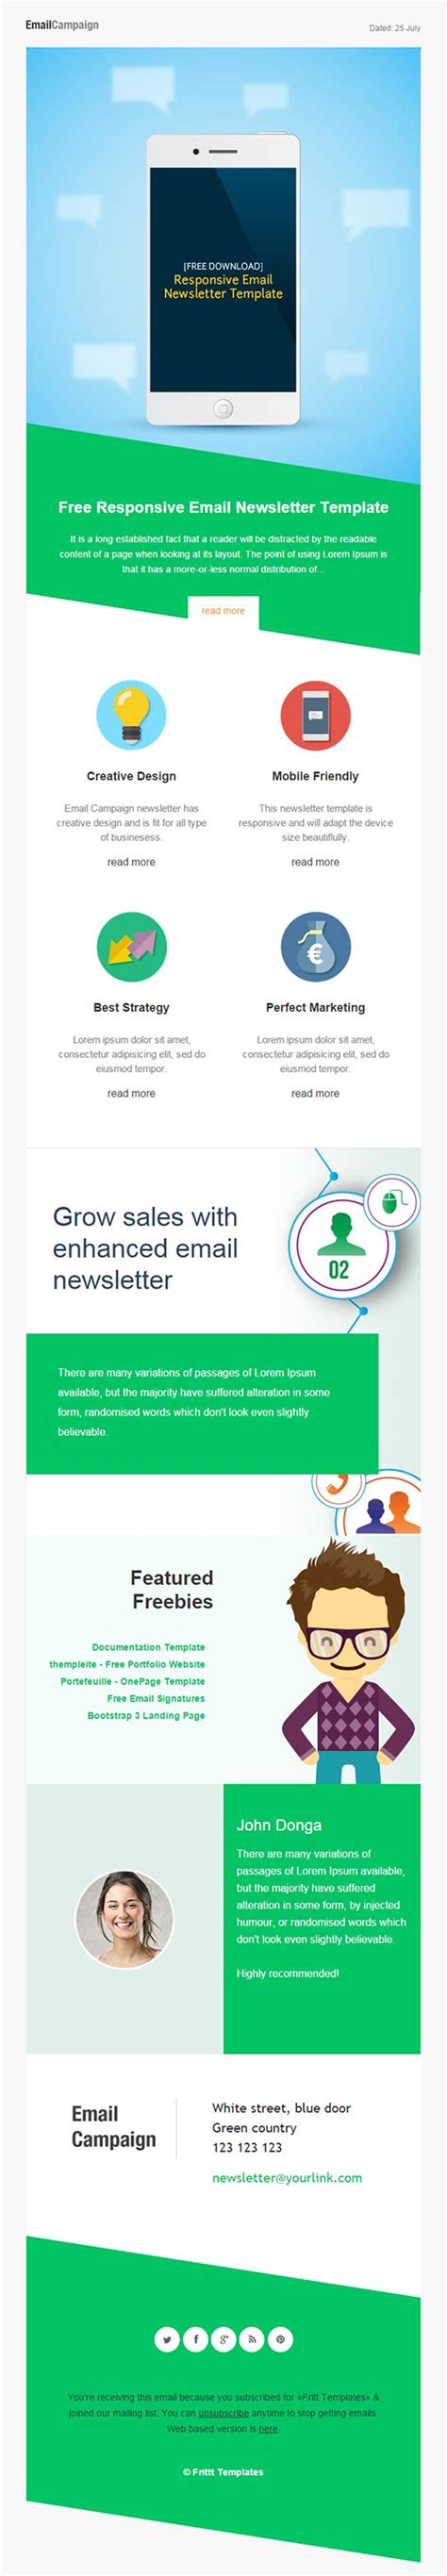 Responsive Email Newsletter Template Free Download On Behance Free Mailchimp Newsletter Templates